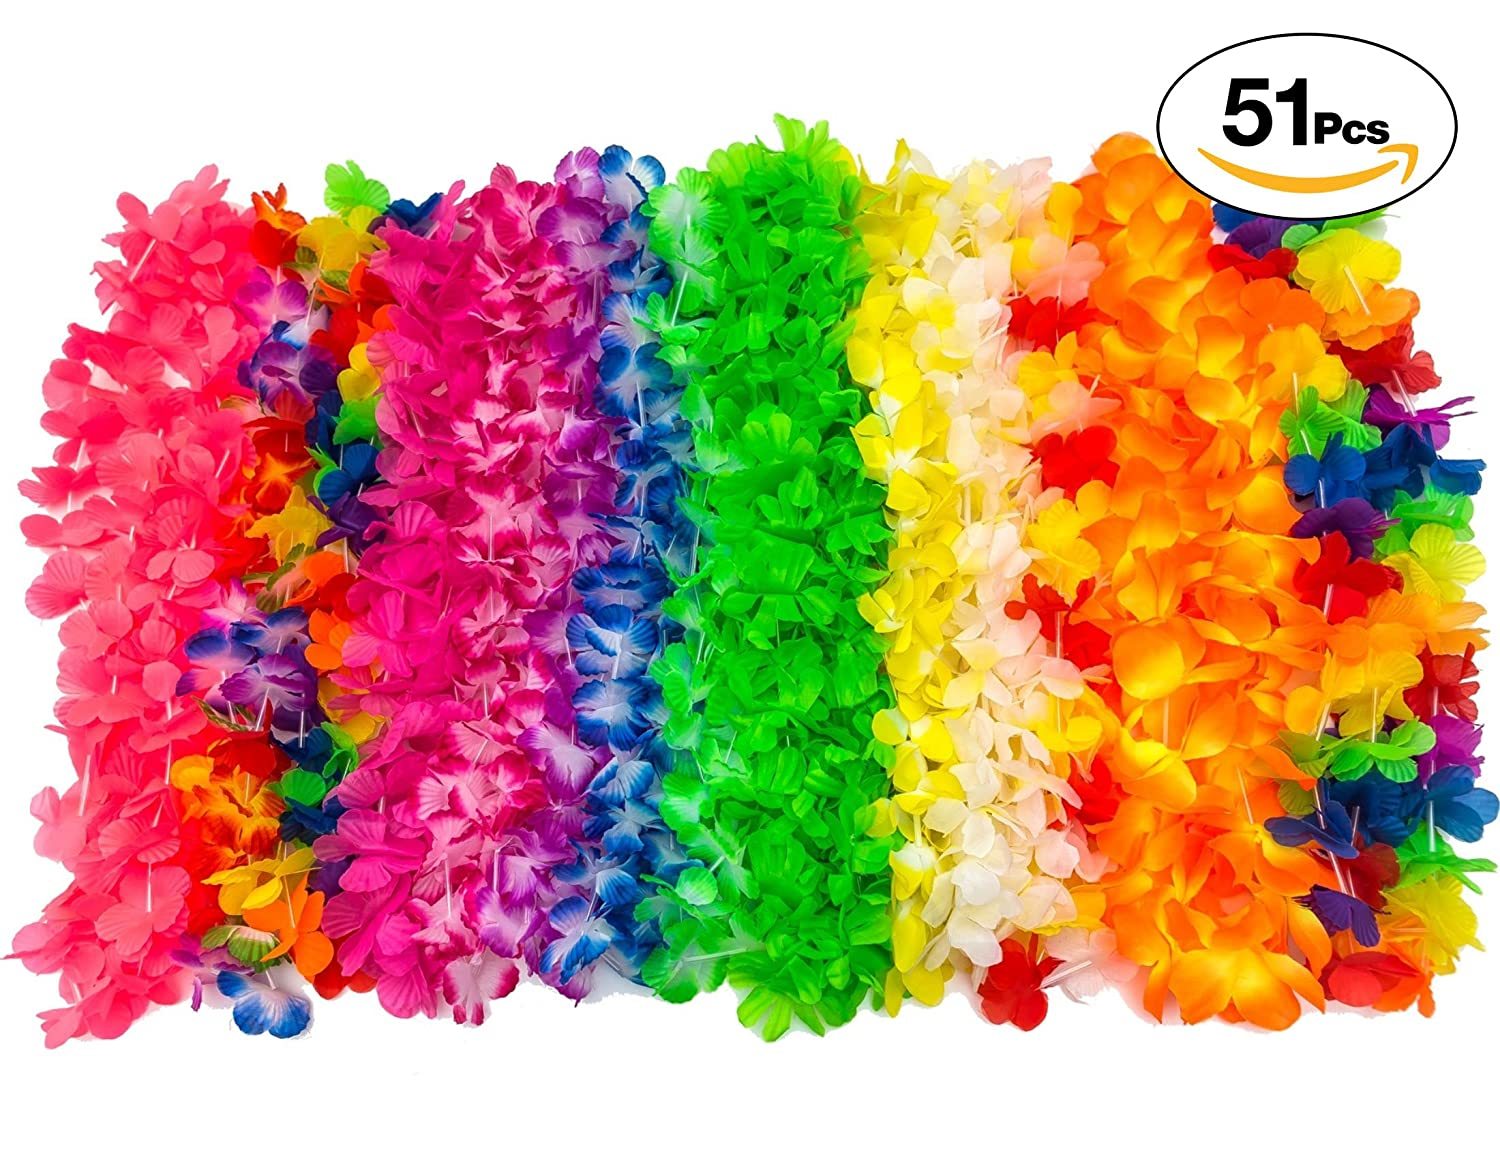 Amazon.com: Leis Bulk Tiki Party Supplies Flower Leis Hawaiian Lei ...